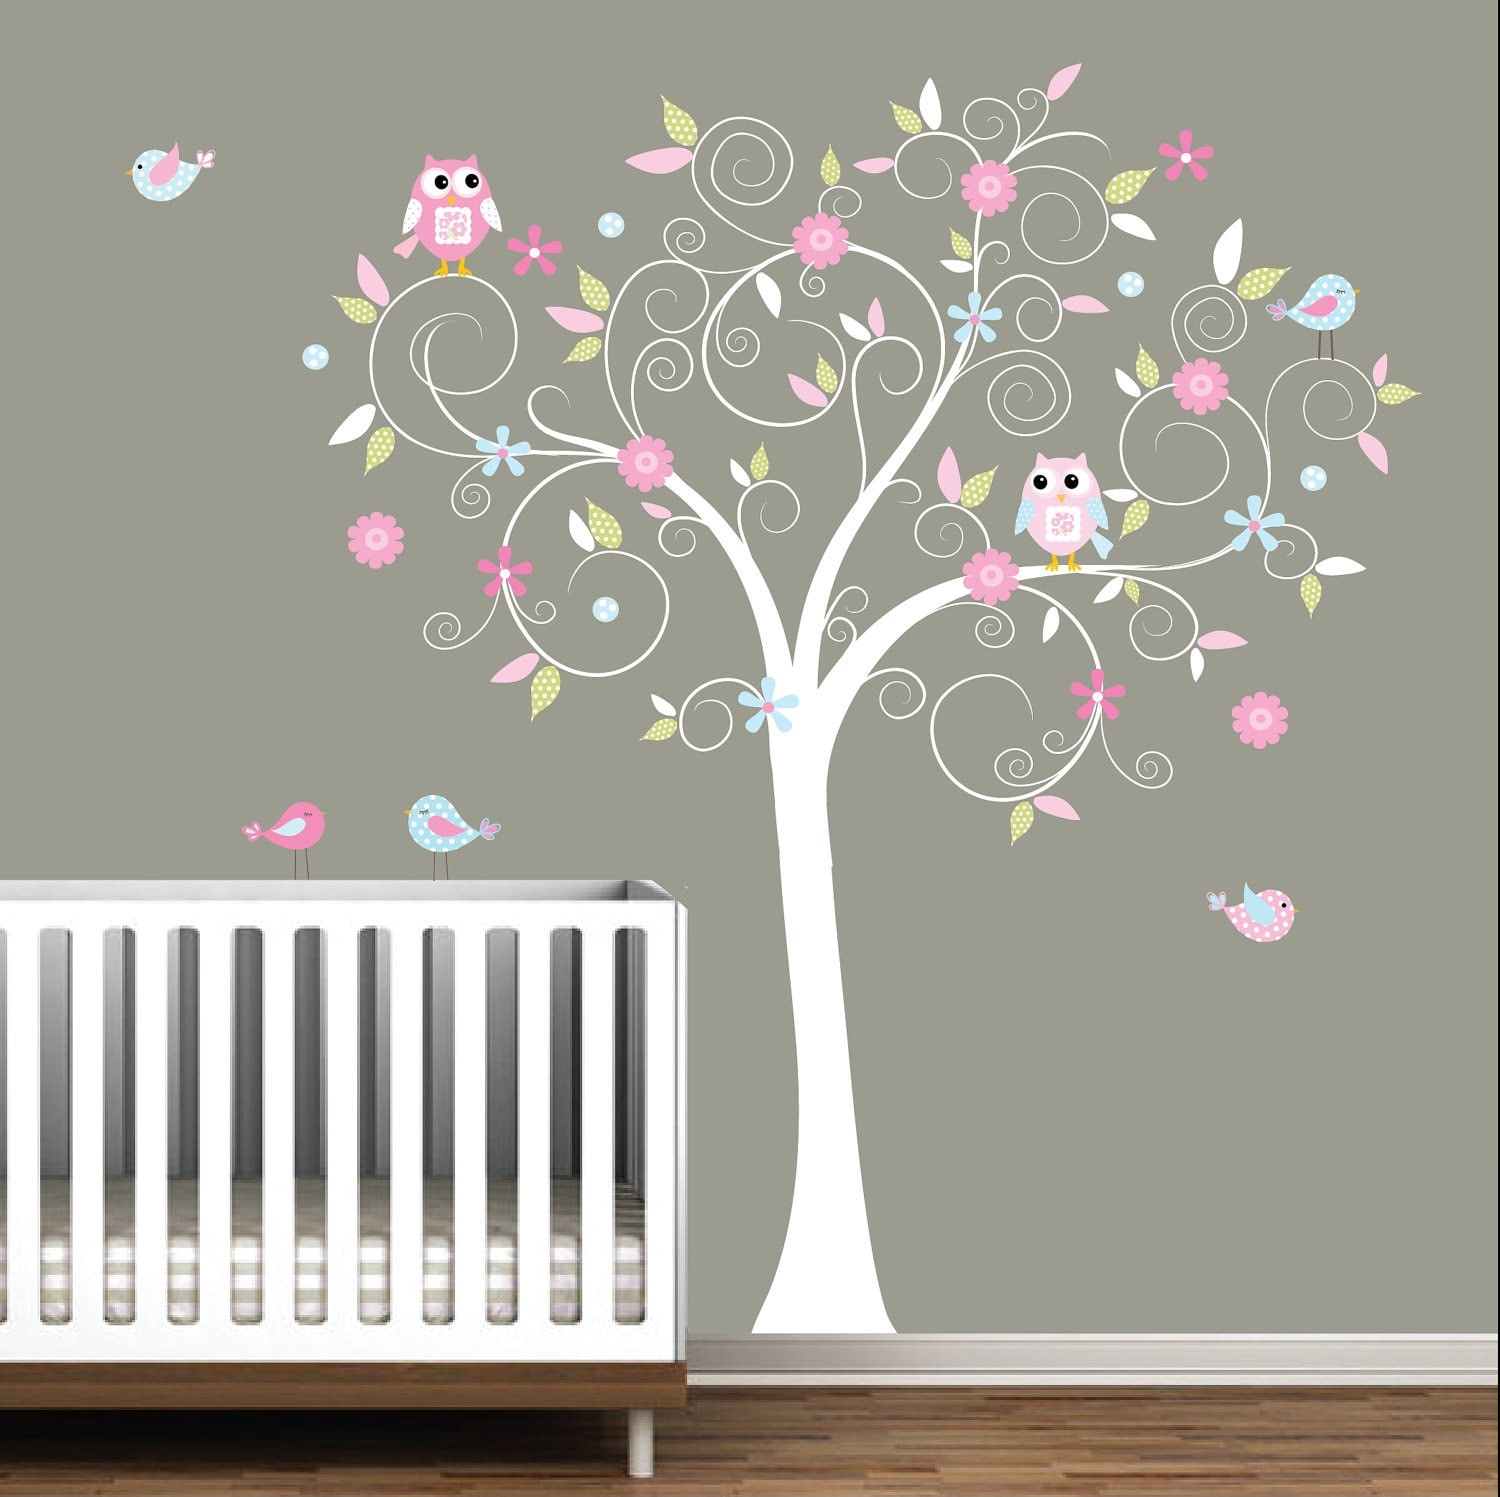 Decal stickers vinyl wall decals nursery tree e17 for Baby girl wall decoration